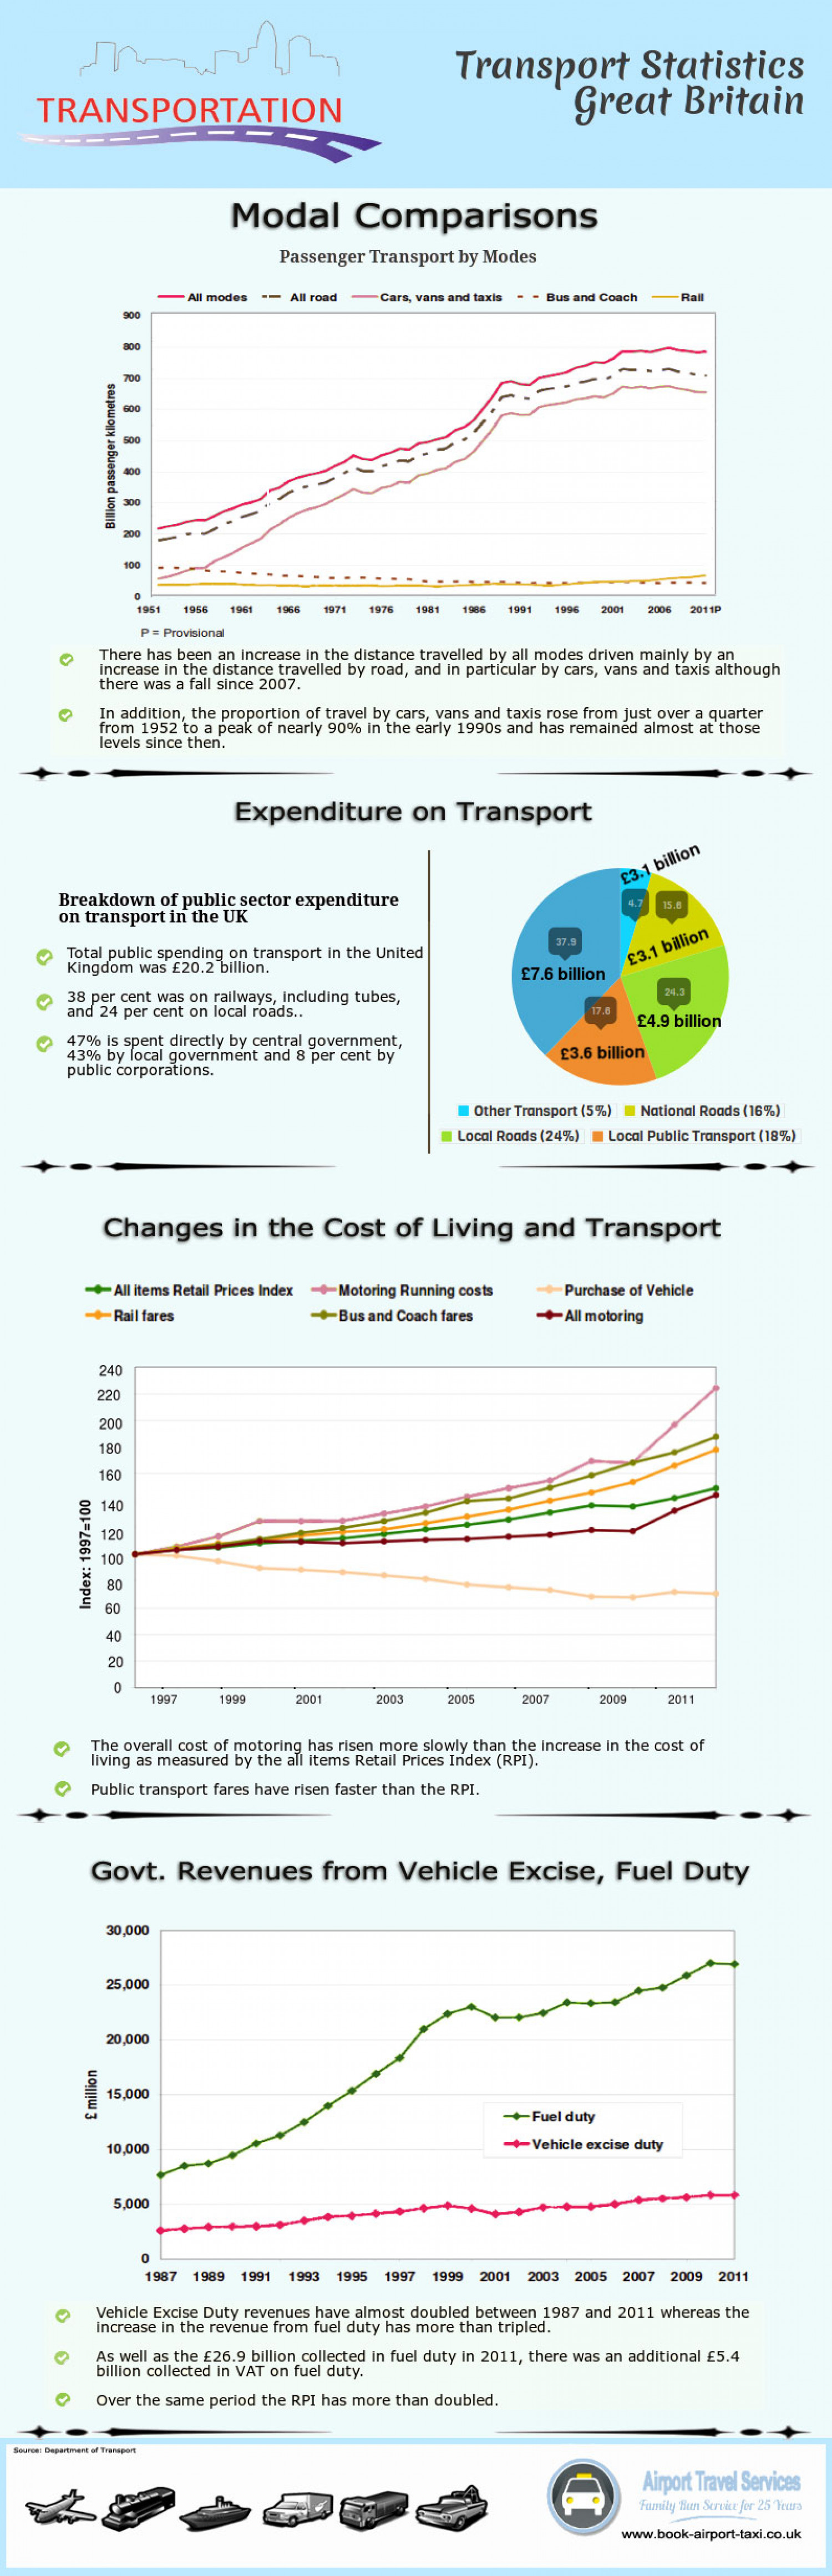 Transport Statistics on Modal Comparisons: Great Britain Infographic